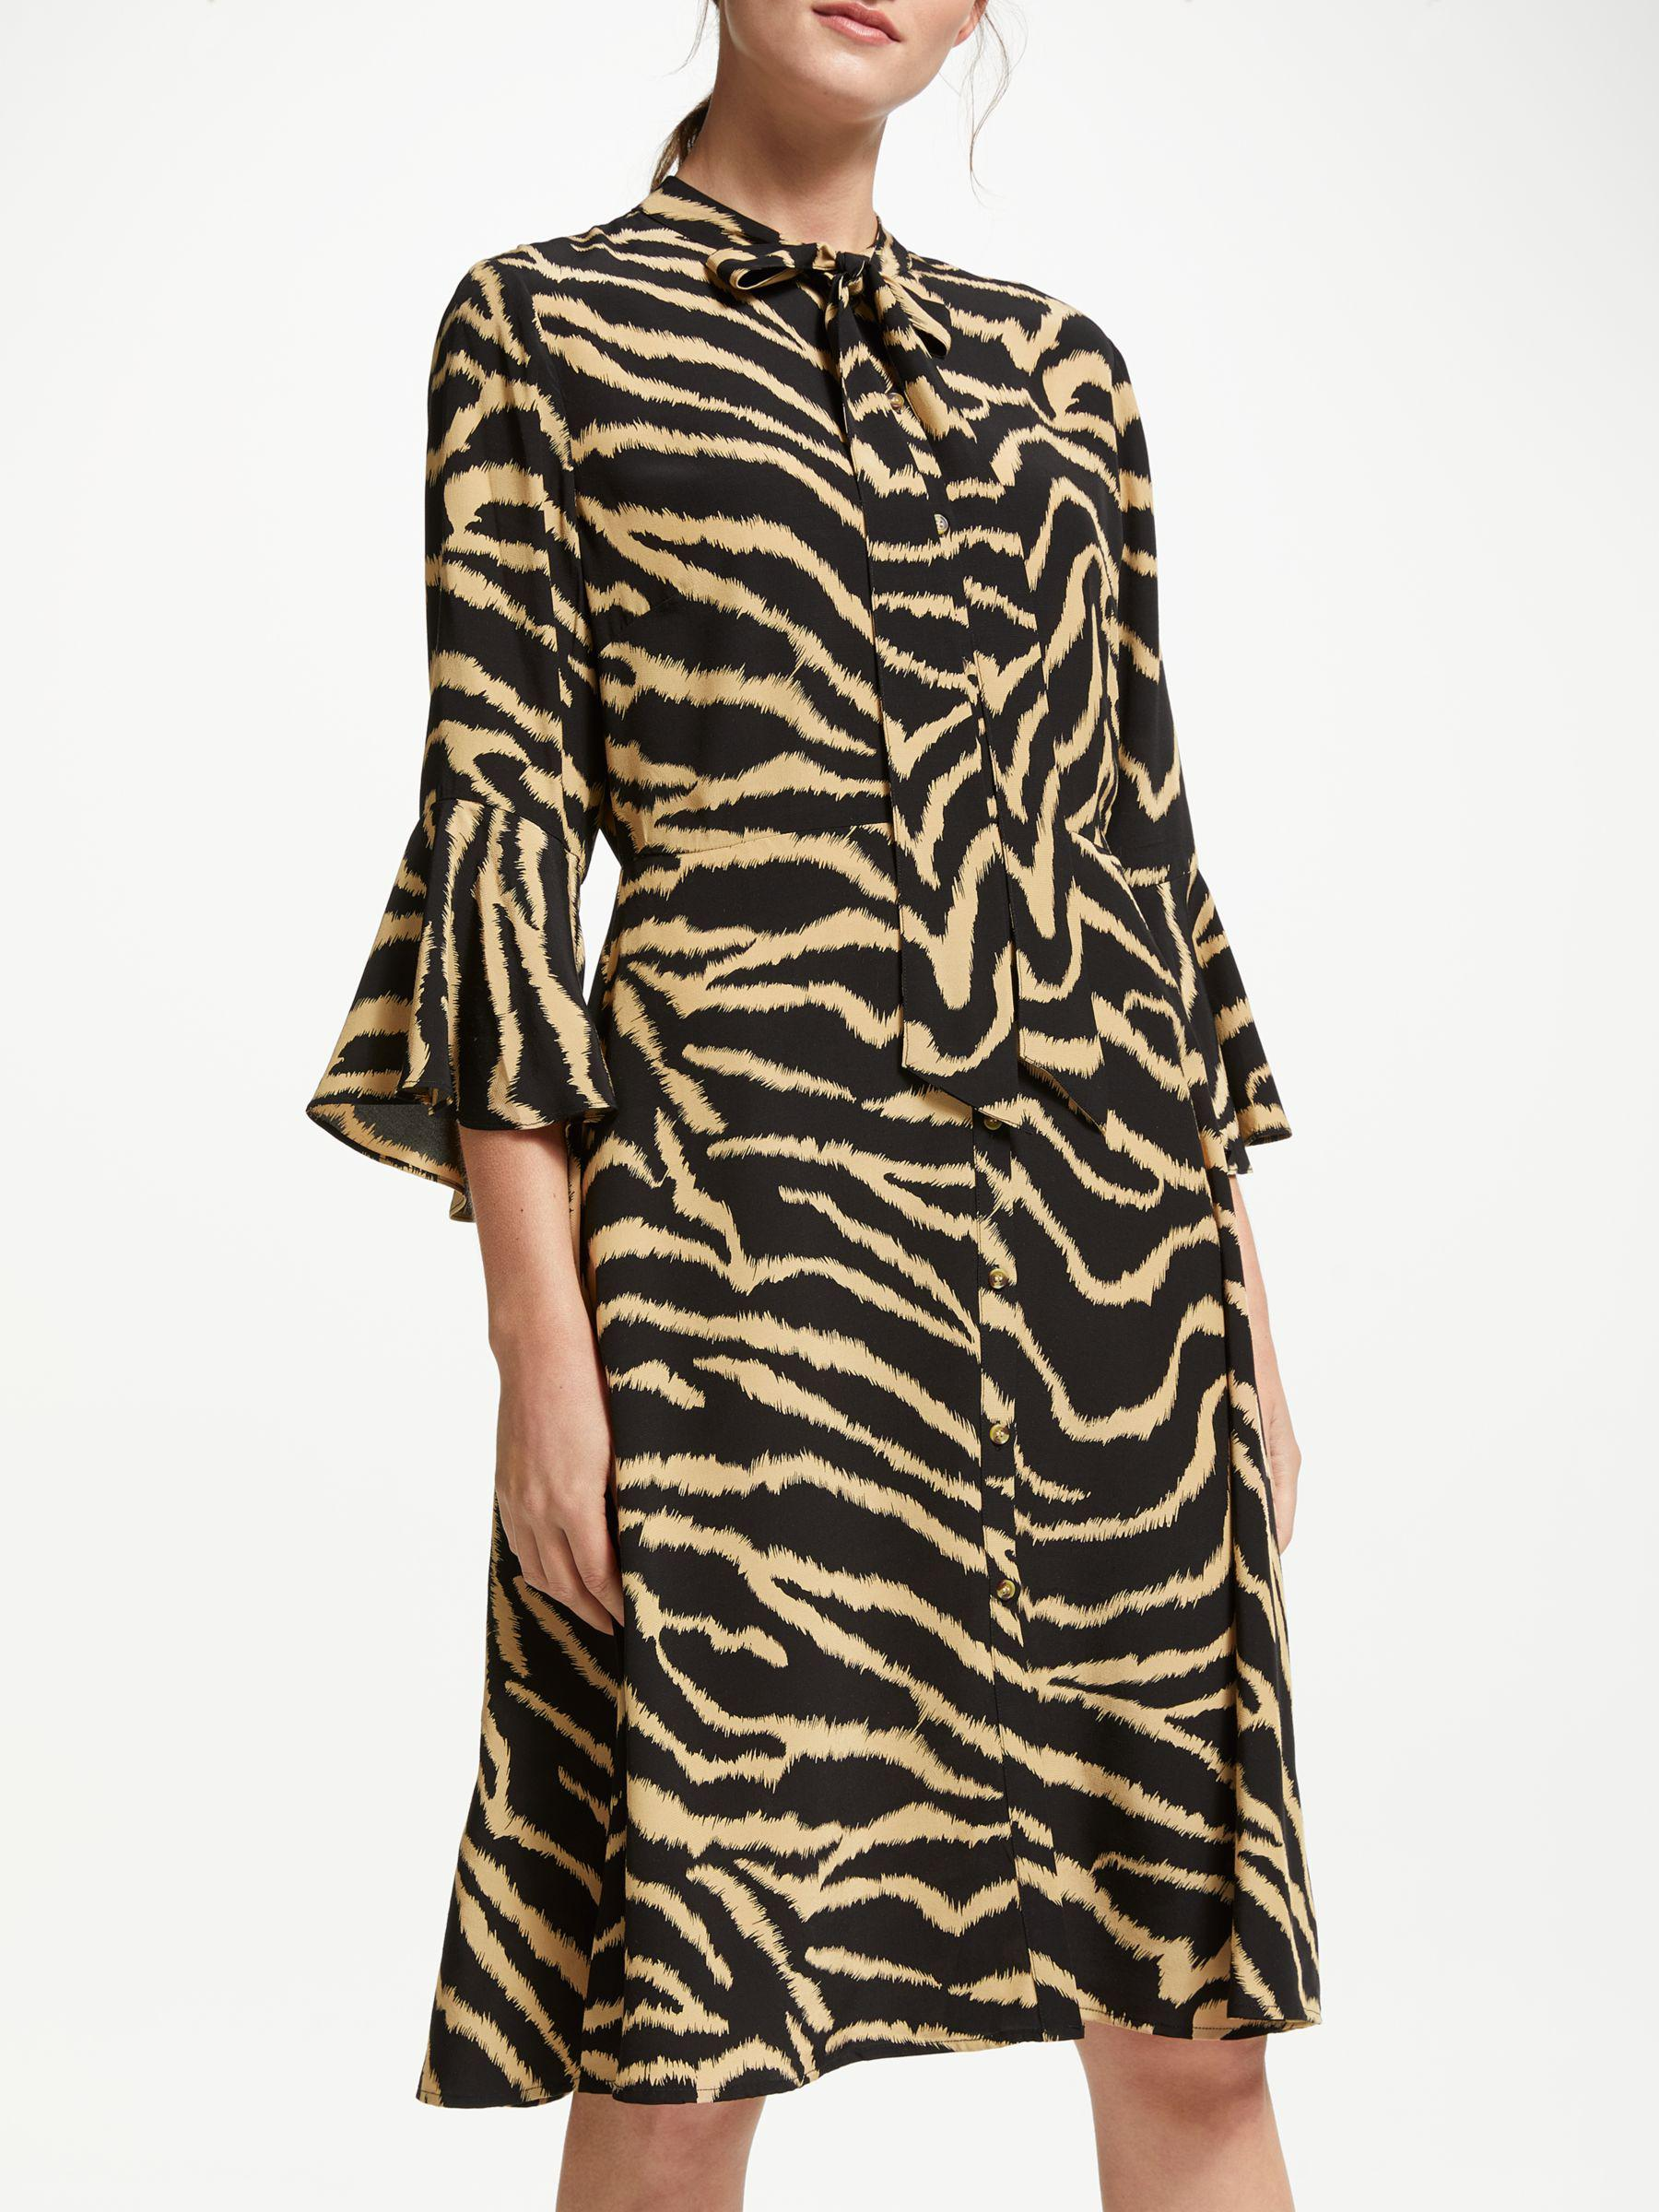 ddb9d99cd9f1b Somerset by Alice Temperley Zebra Long Sleeve Dress in Black - Lyst